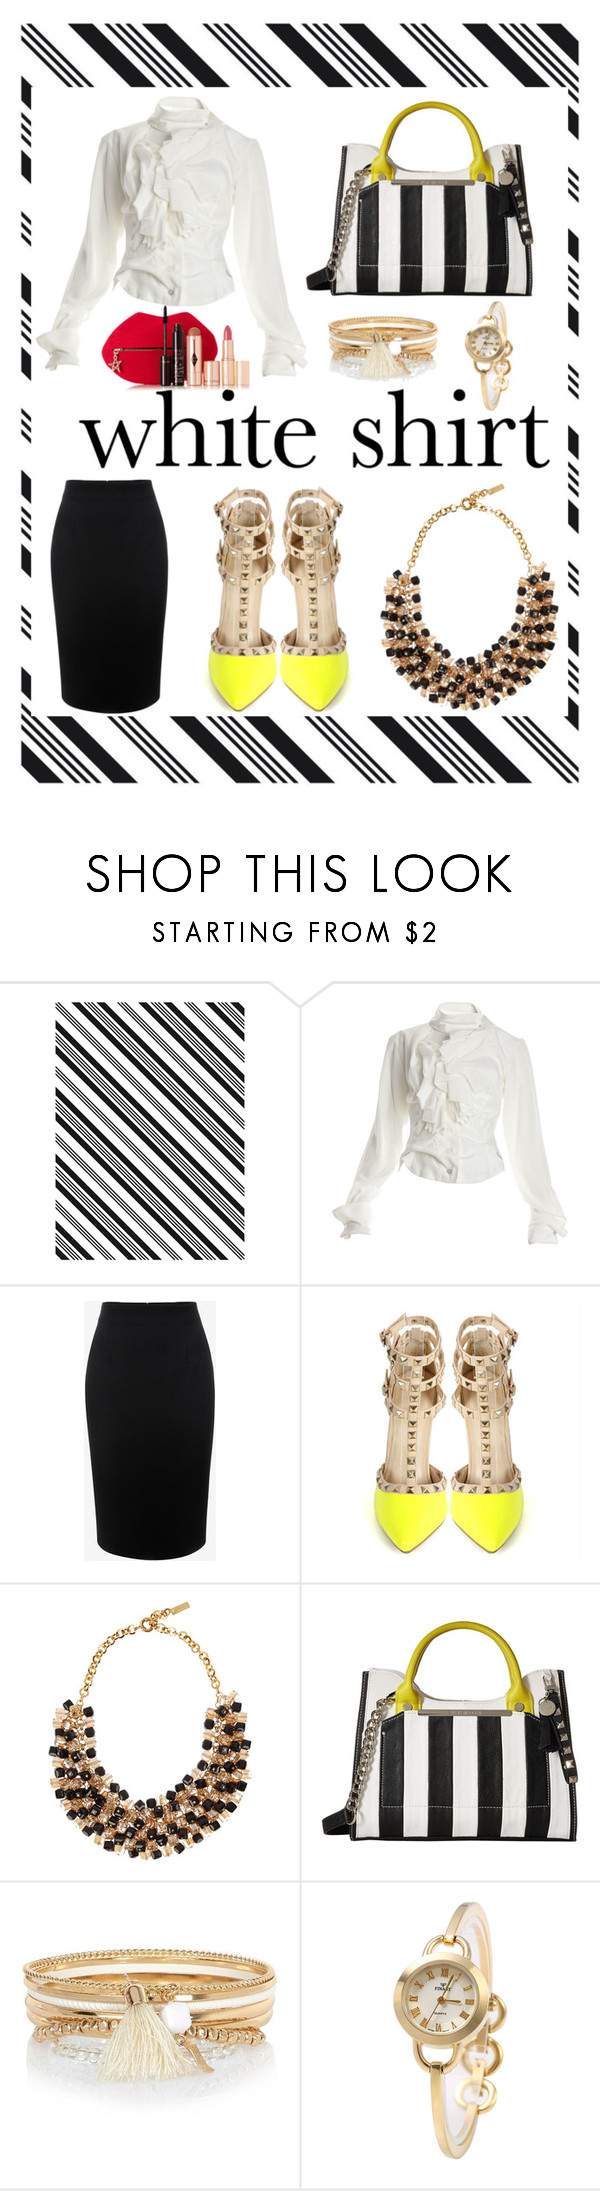 """""""The White Shirt"""" by carliruiz ❤ liked on Polyvore featuring Darice, Vivienne Westwood, Alexander McQueen, Etro, Steve Madden, River Island, Charlotte Tilbury and WardrobeStaples"""